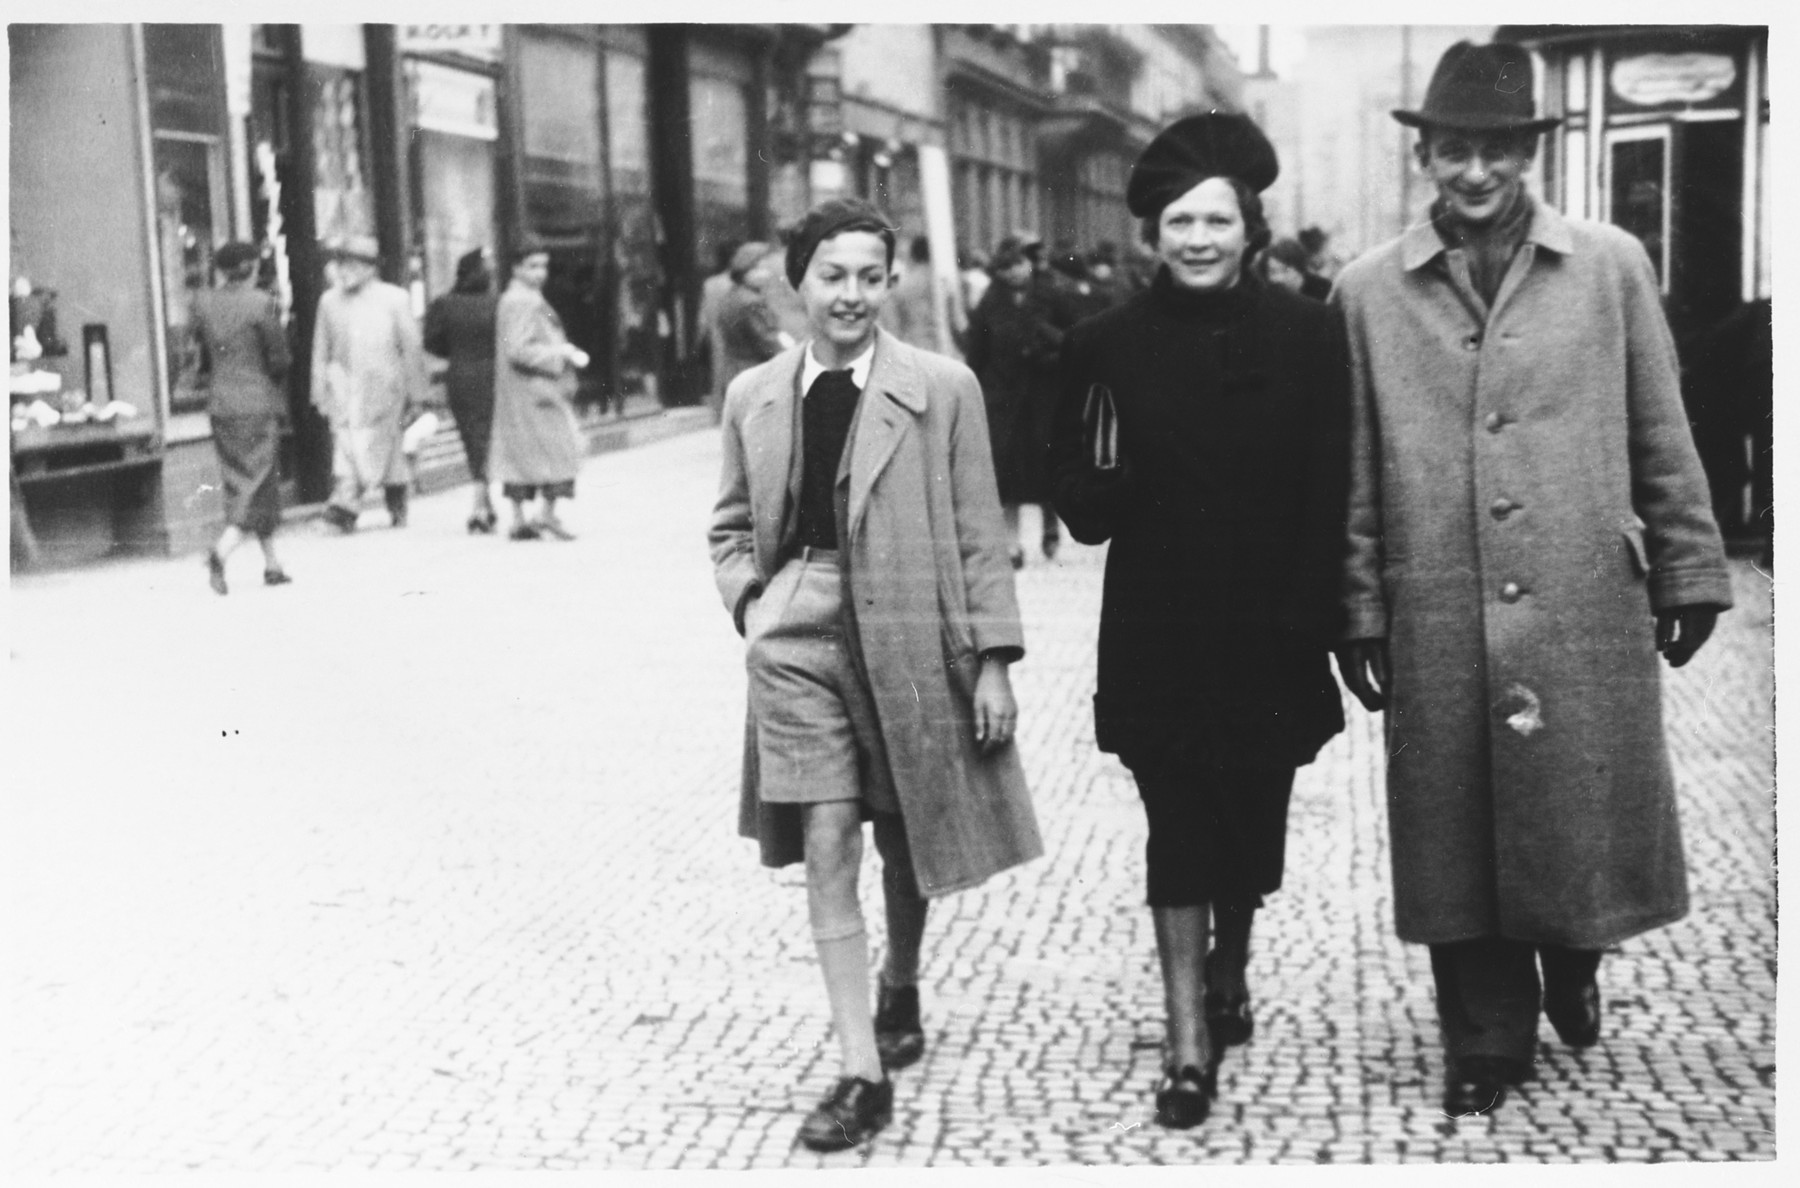 Austrian Jewish refugees walk along a street in Prague.  Pictured from left to right are Alfred and Trimette Langer.  The man on the right is unidentified.